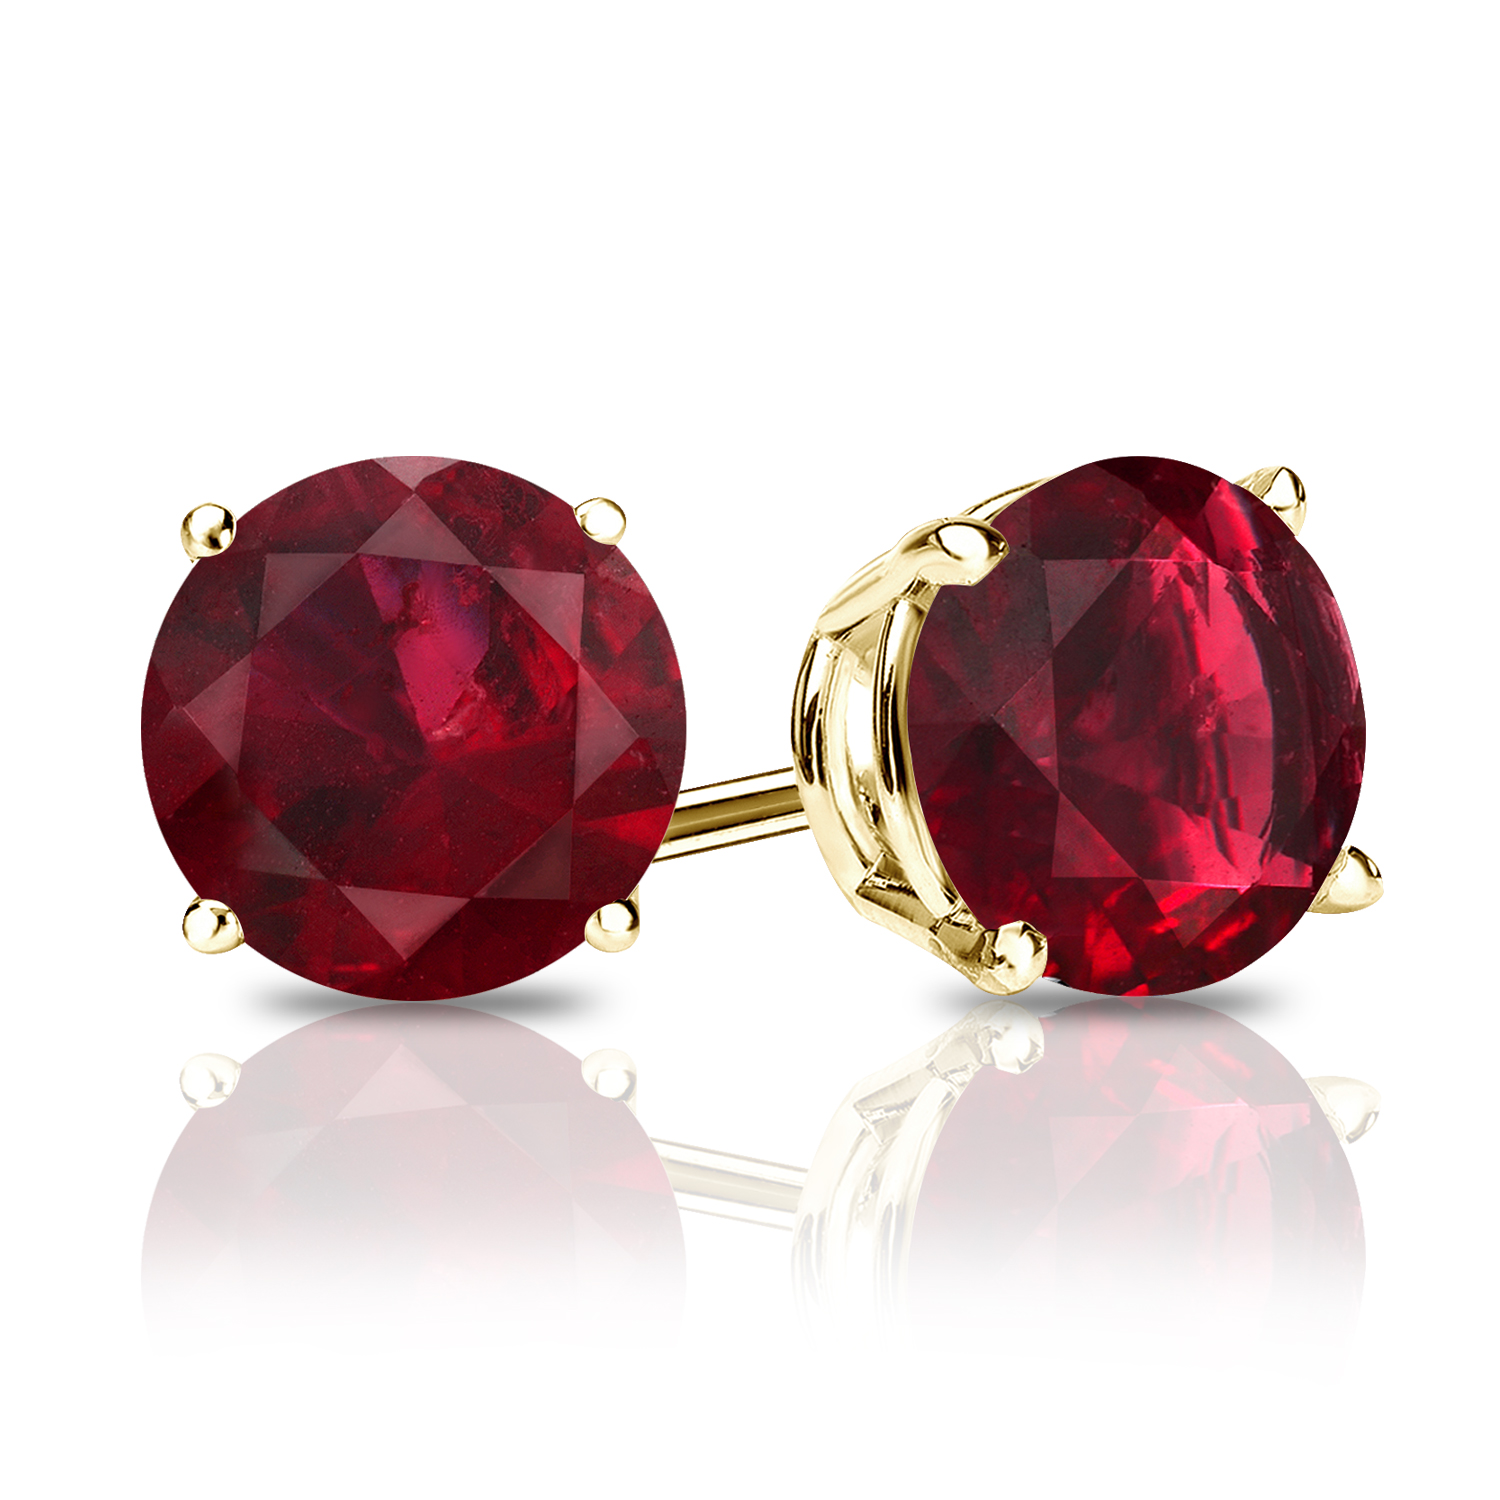 Certified 0.33 cttw Round Ruby Gemstone Stud Earrings in 14k Yellow Gold 4-Prong Basket (Red, AAA)